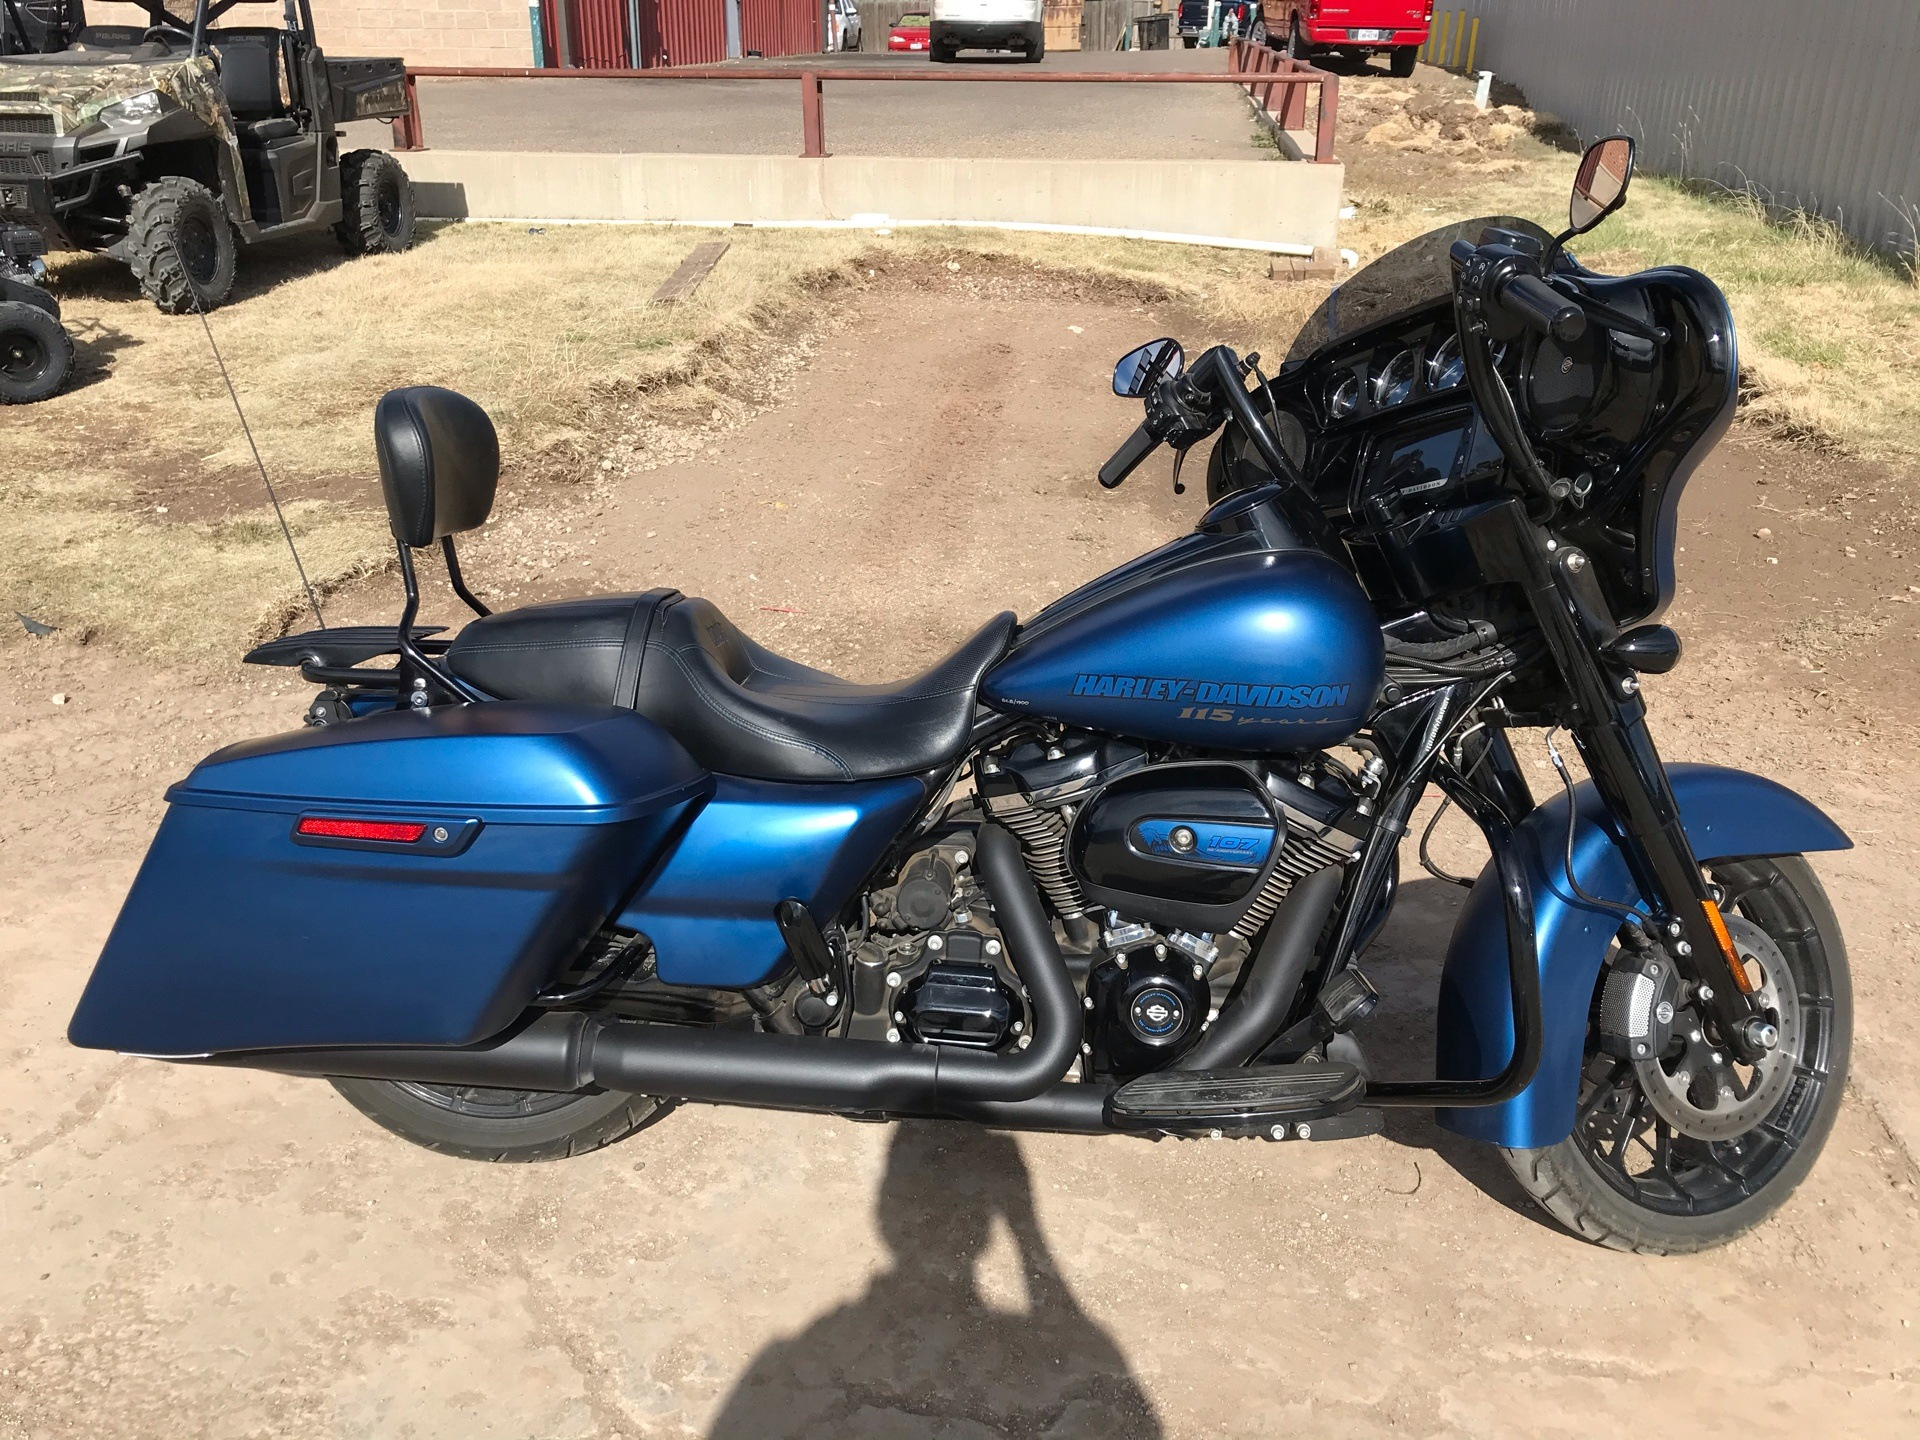 Used 2018 Harley Davidson Street Glide Special Motorcycles In Amarillo Tx Stock Number H627628 Lonestarpowersports Com